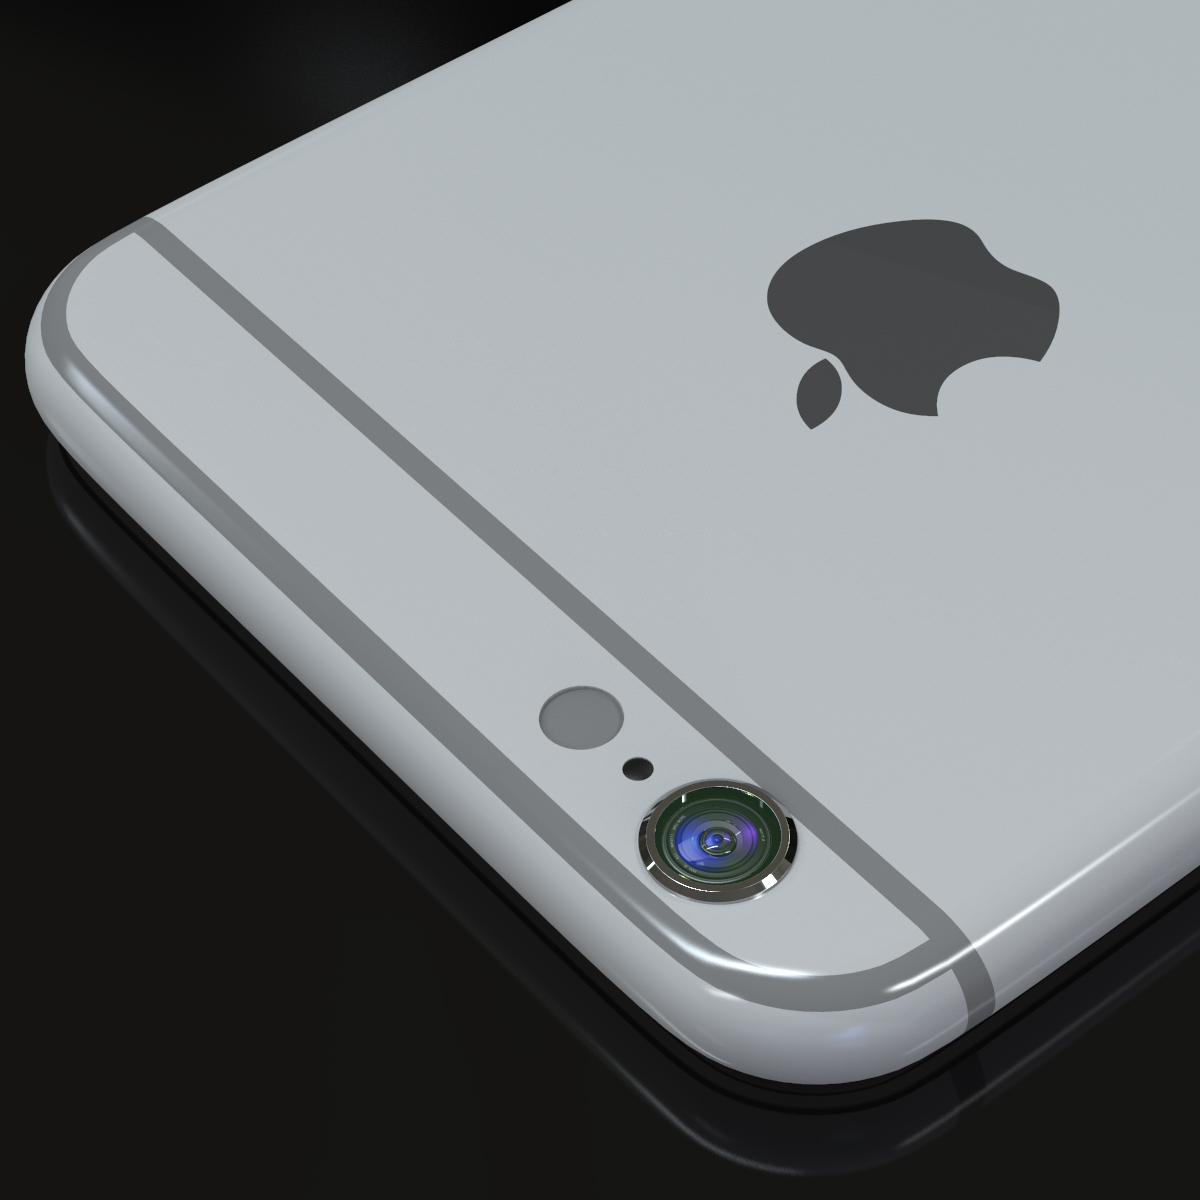 apple iphone 6s 3d model max fbx ma mb texture obj 278460